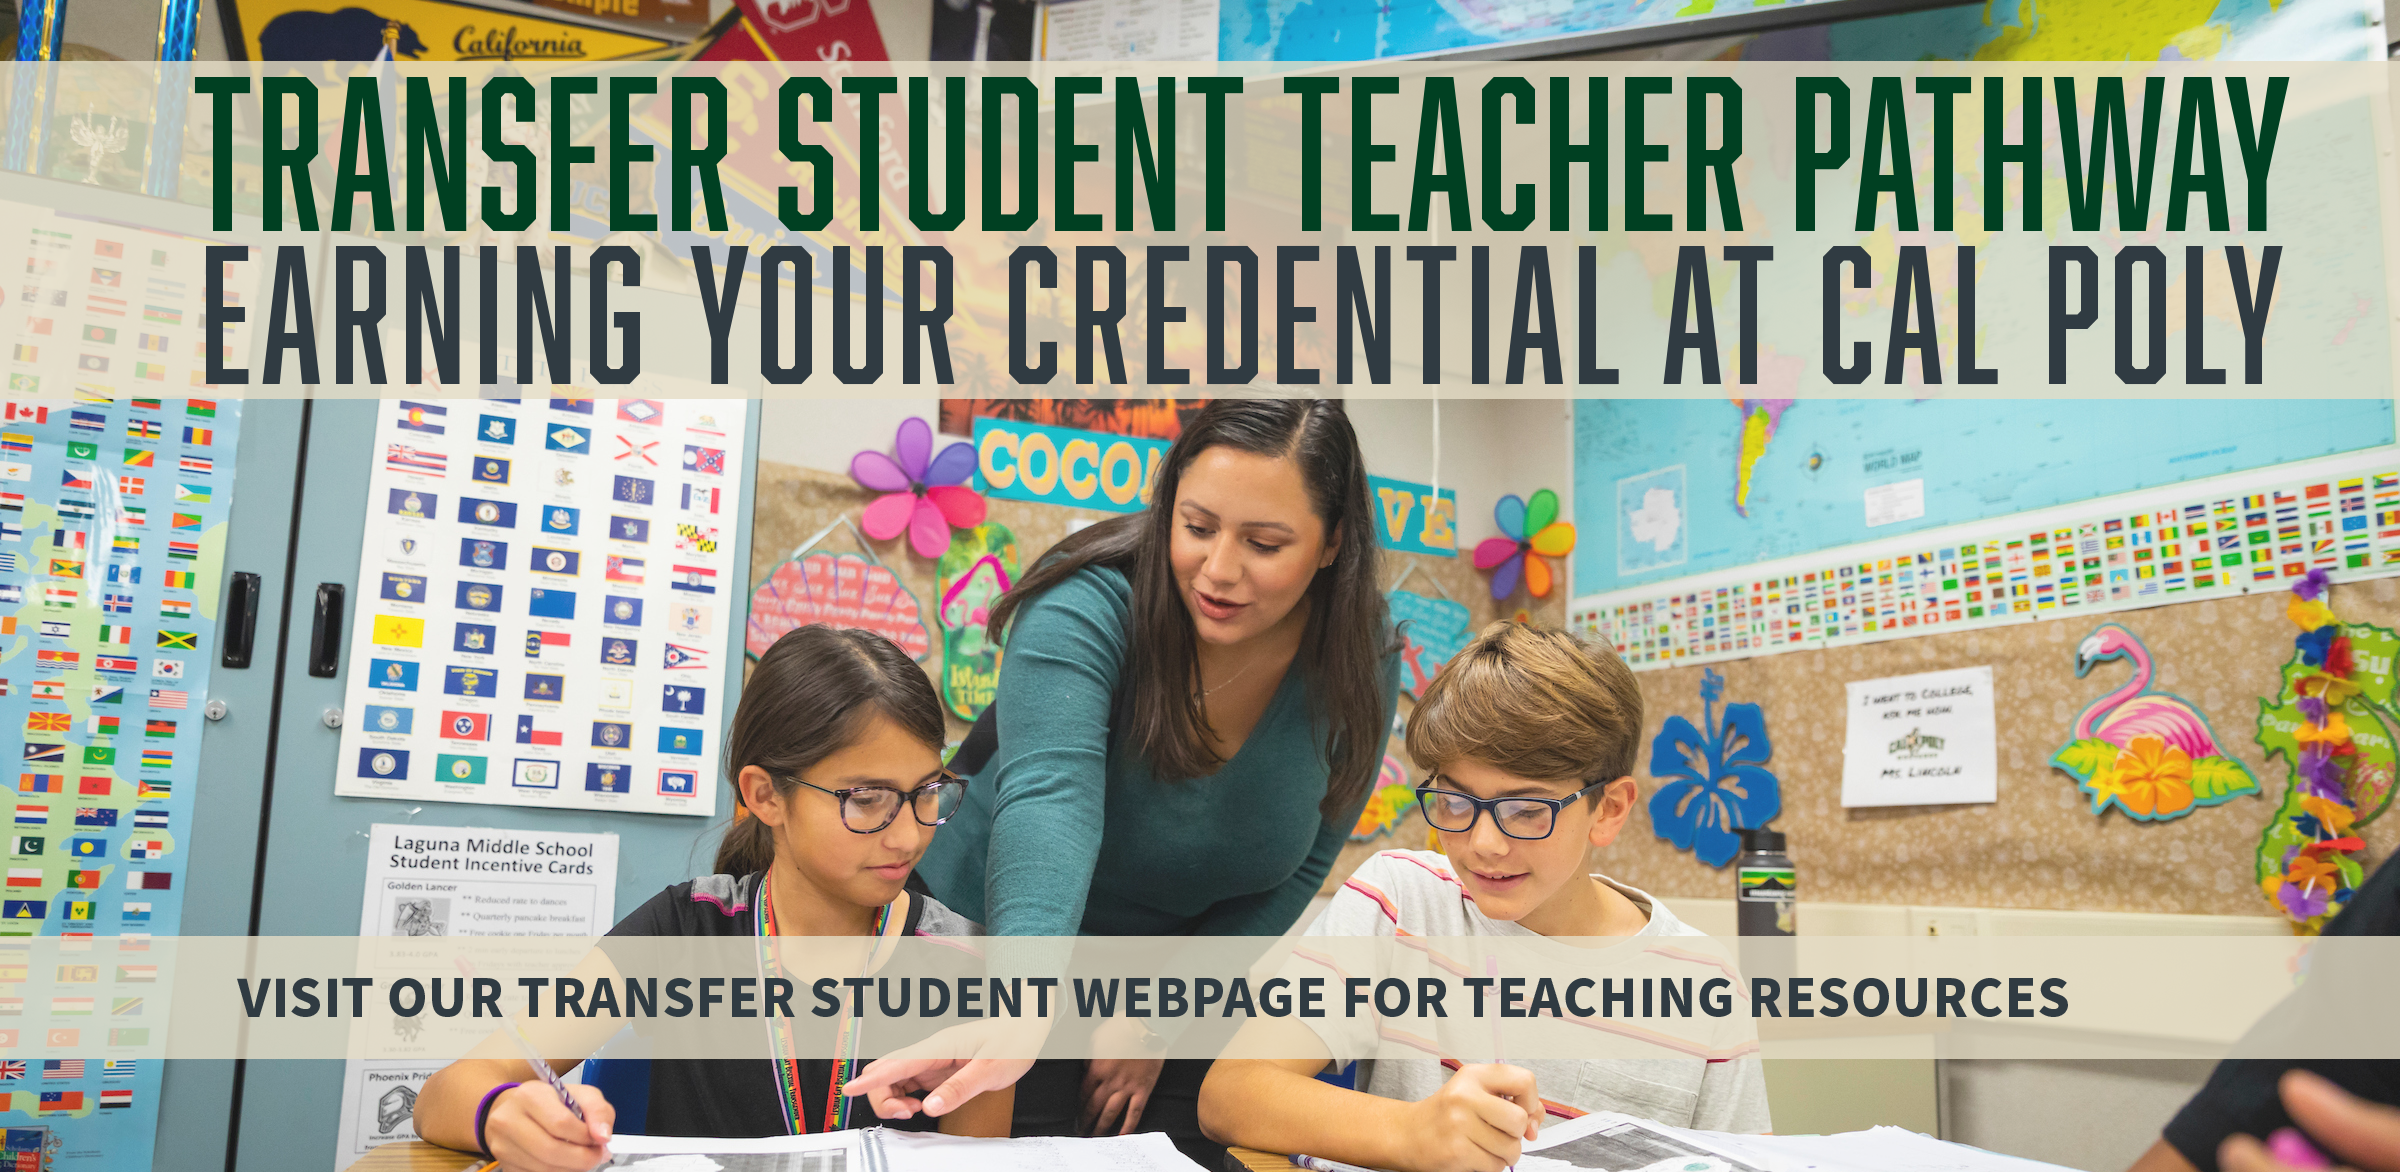 Transfer Student Teacher Pathway - Earning Your Credential at Cal Poly